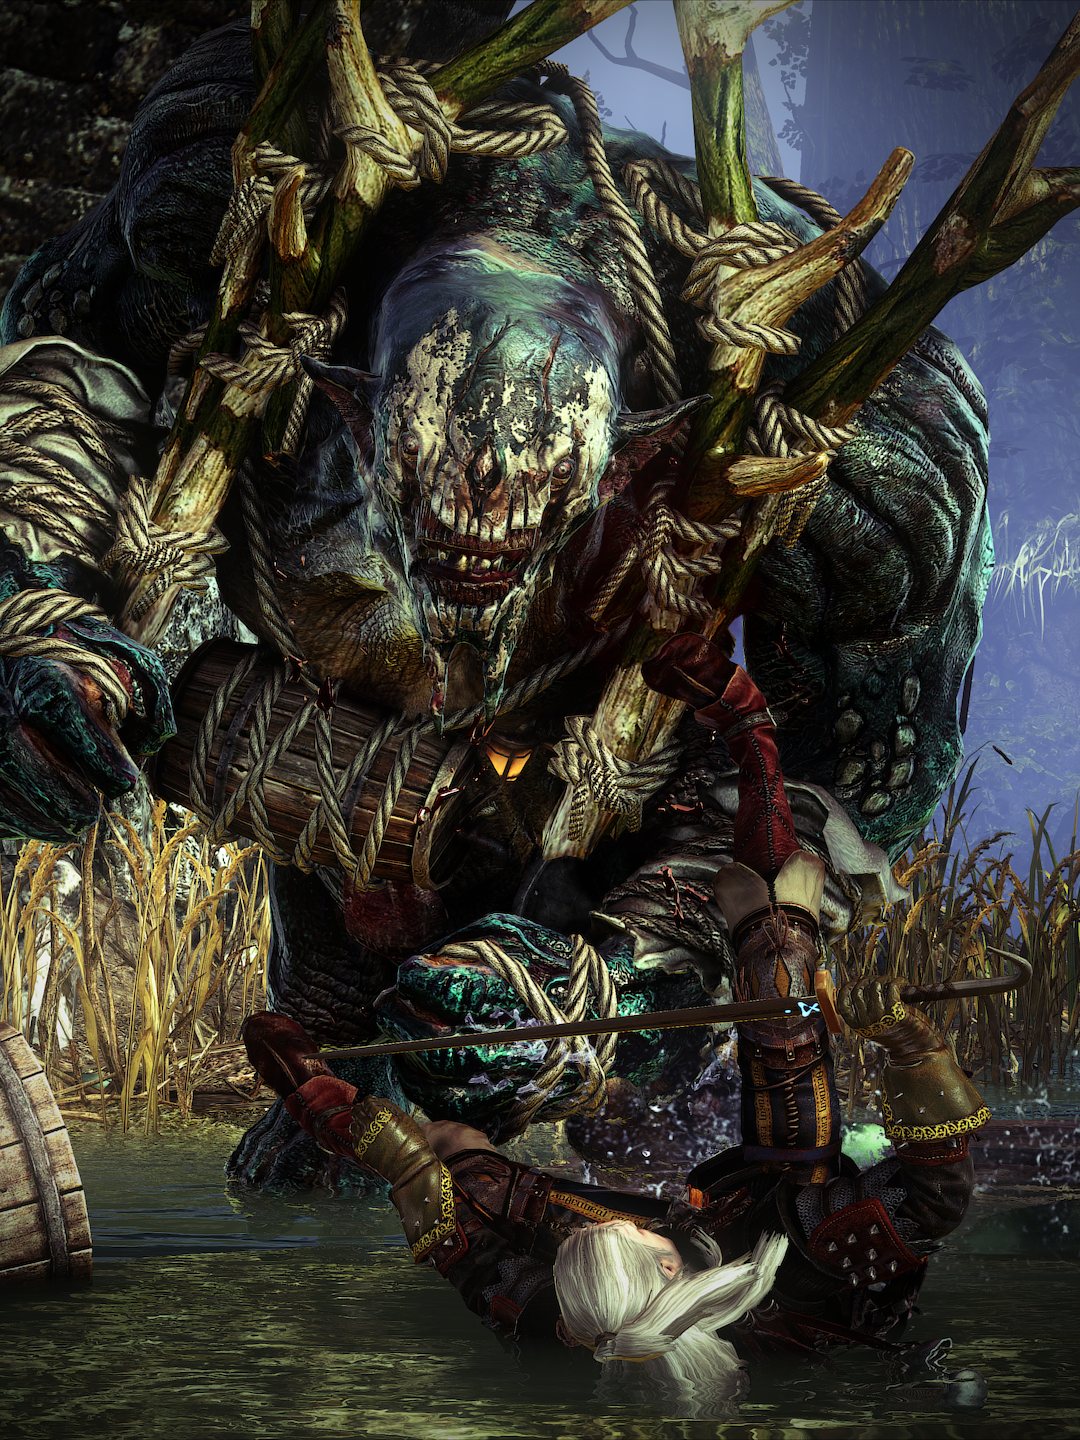 thetumbleinthejungle.png - The Witcher 2: Assassins of Kings